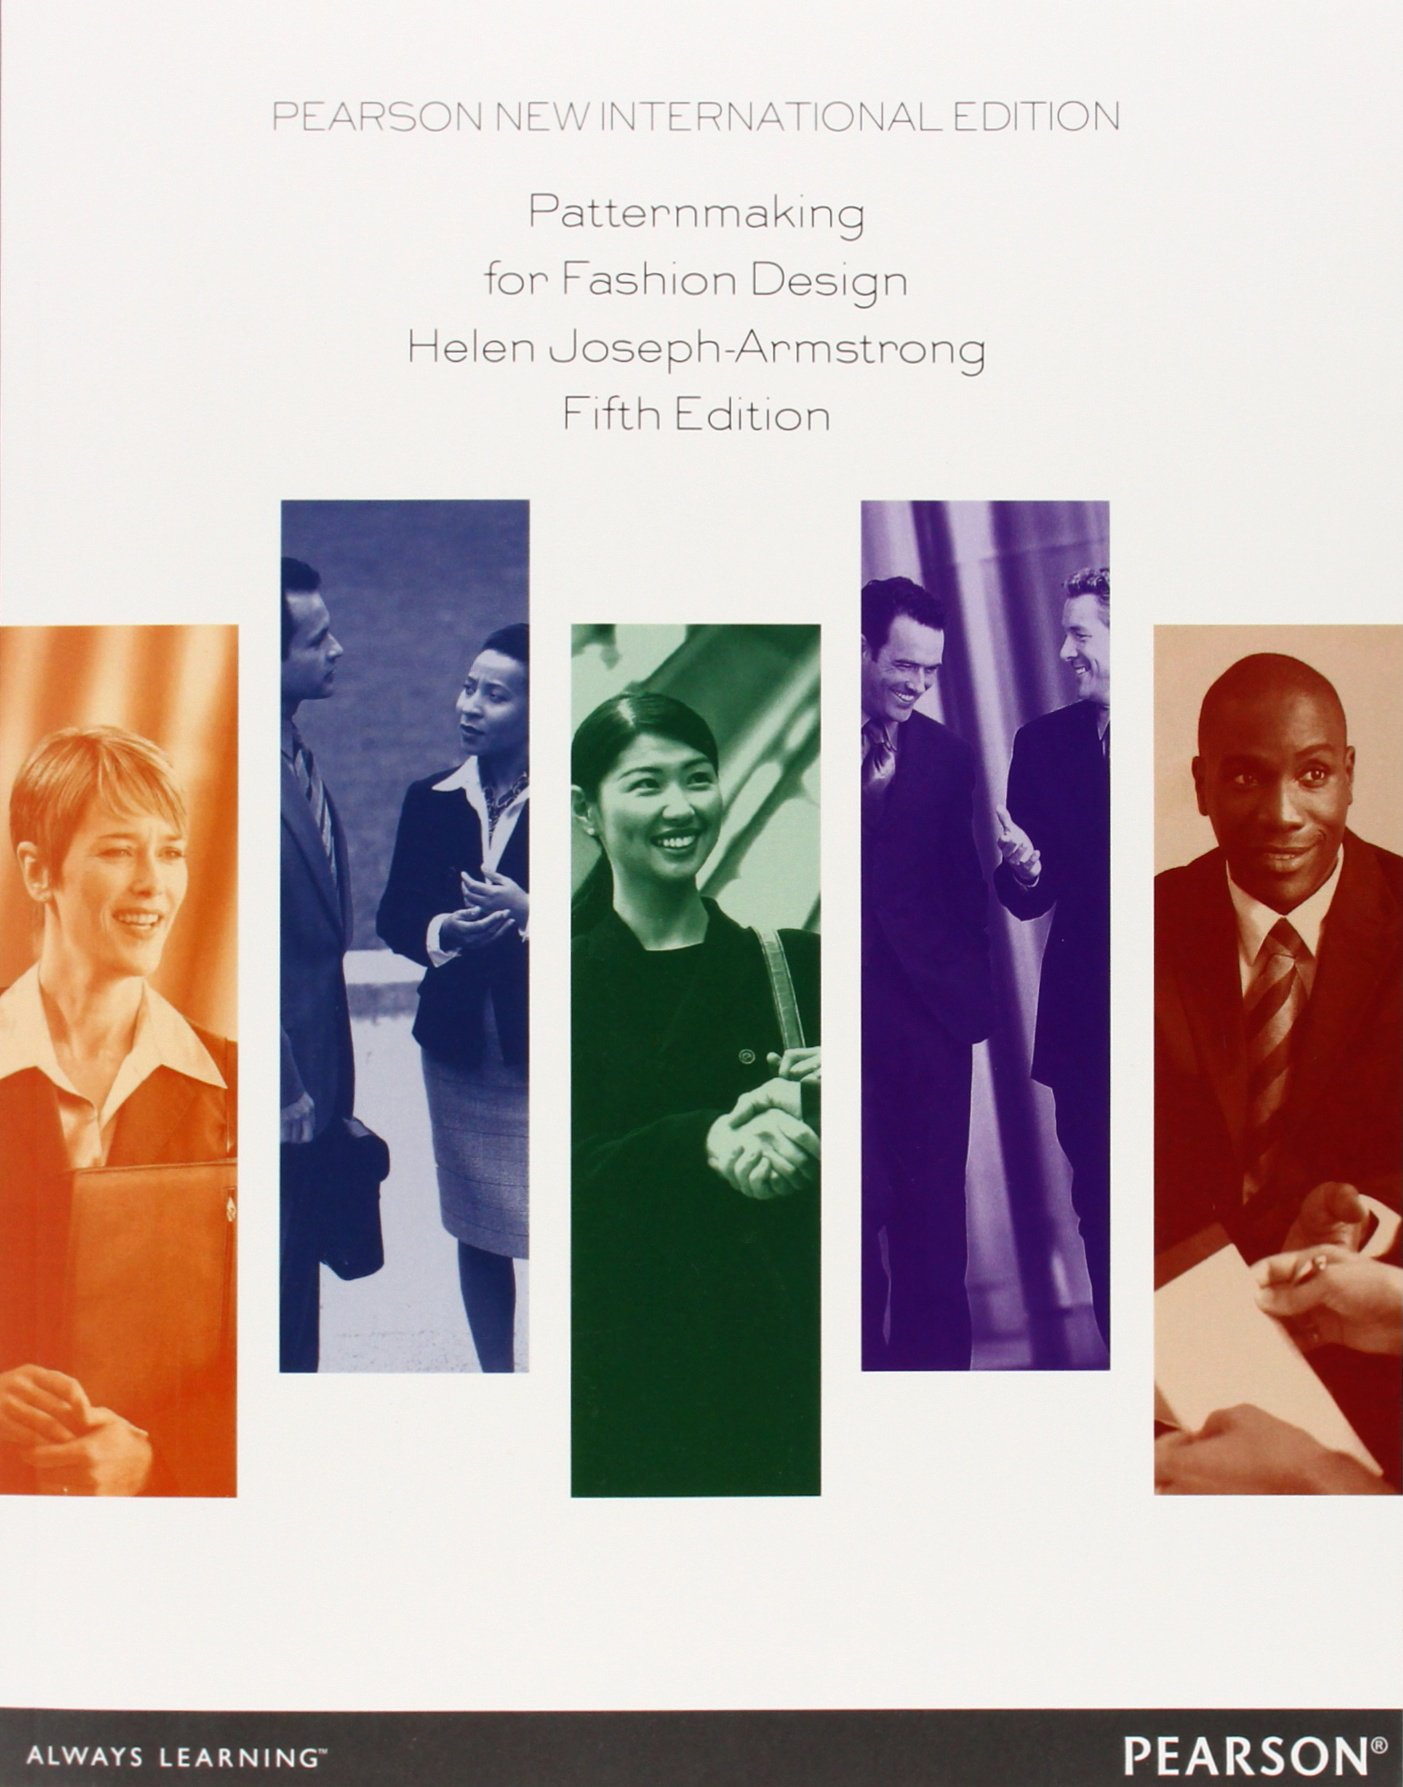 Patternmaking For Fashion Design Pearson New International Edition Helen Joseph Armstrong 9781292024813 Amazon Com Books